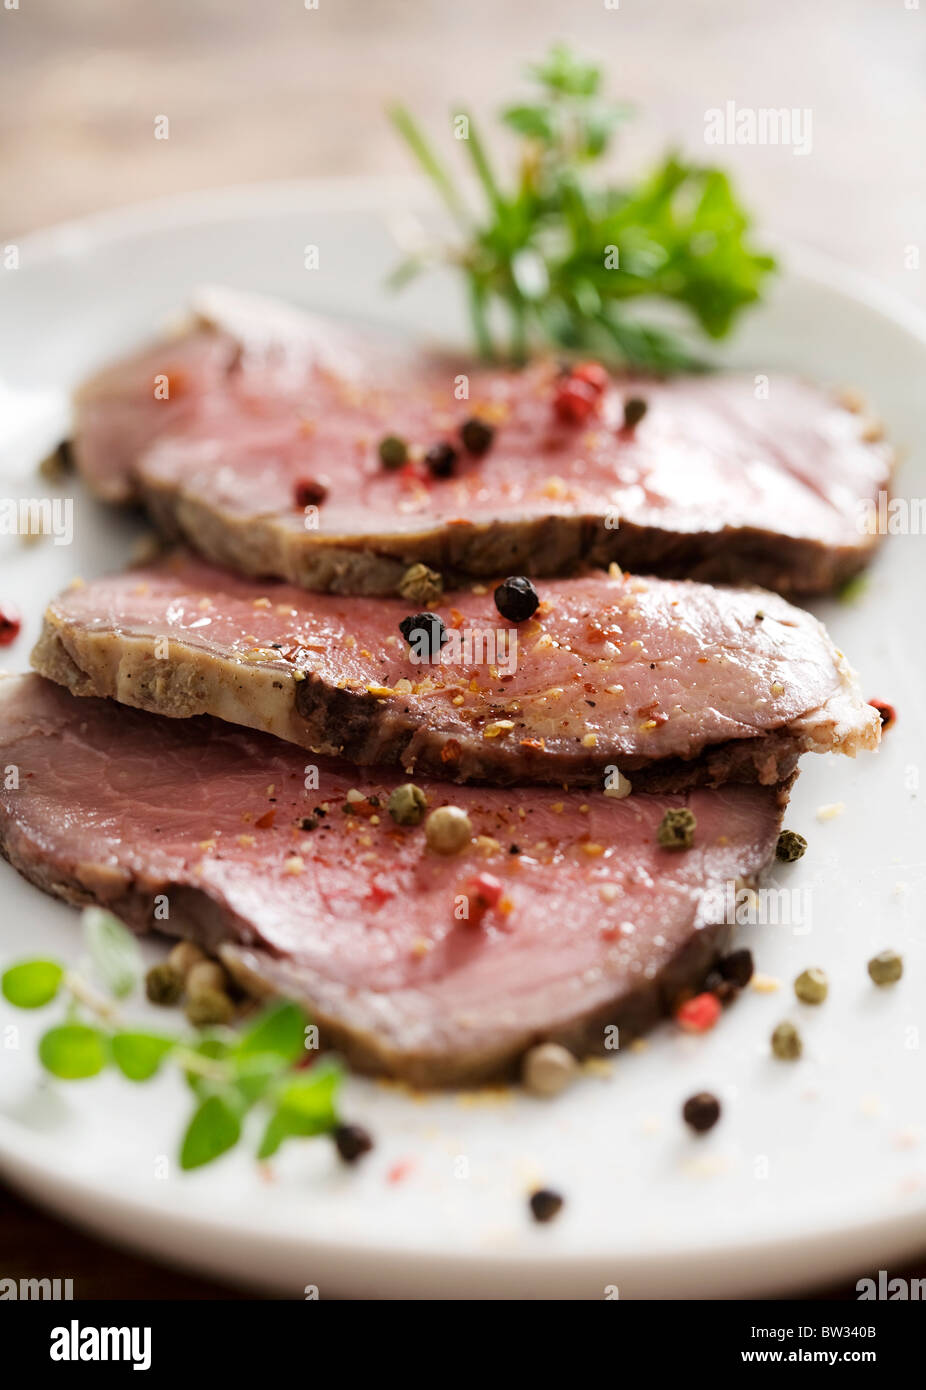 slices of juicy roast beef with herbs and pepper - Stock Image